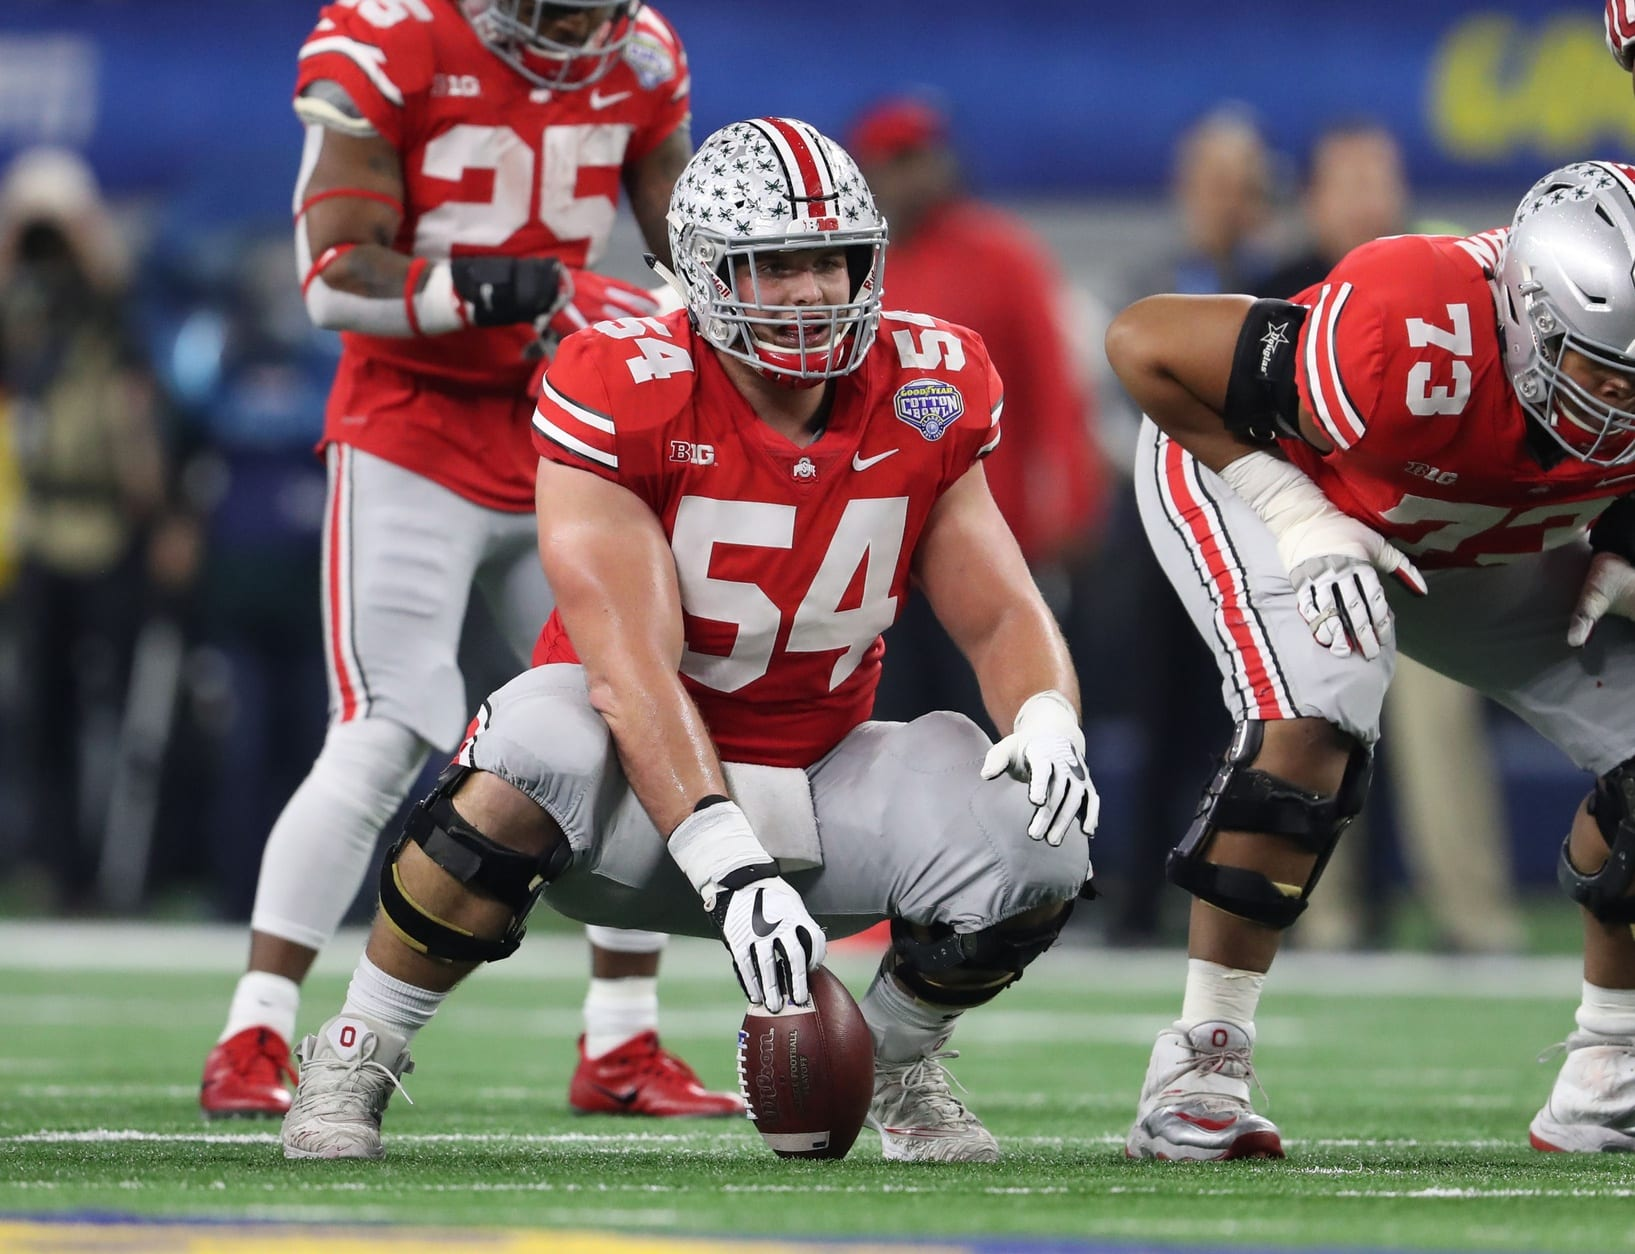 Top Nfl Draft Prospect Billy Price Injured At The Scouting